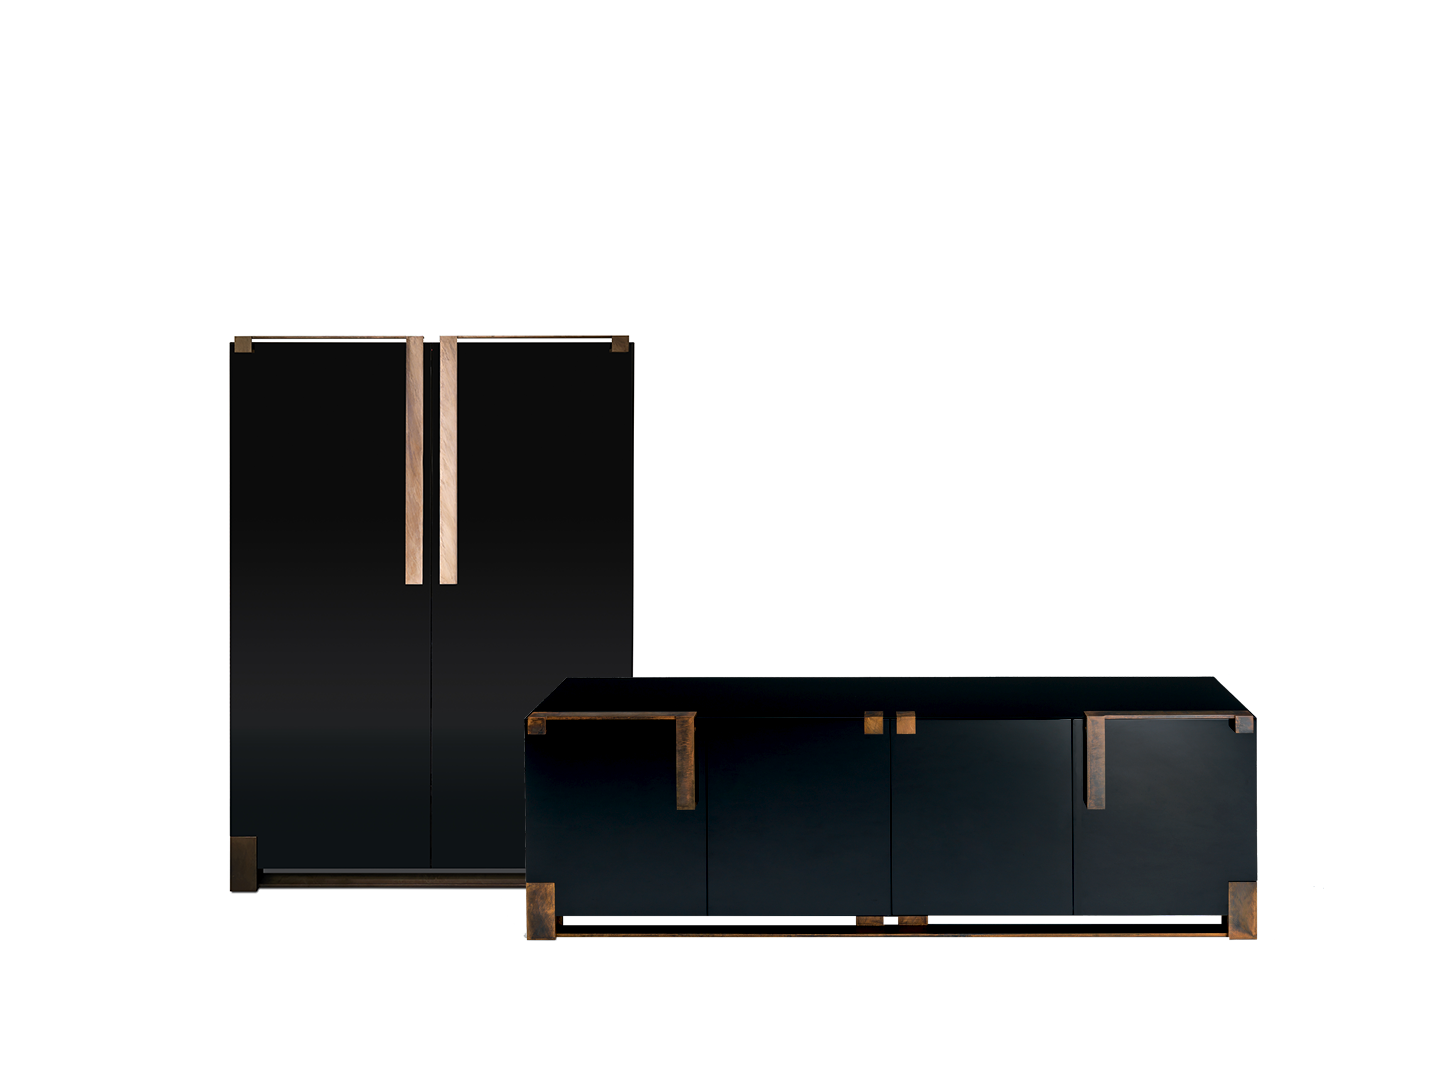 Black and Gold cabinets